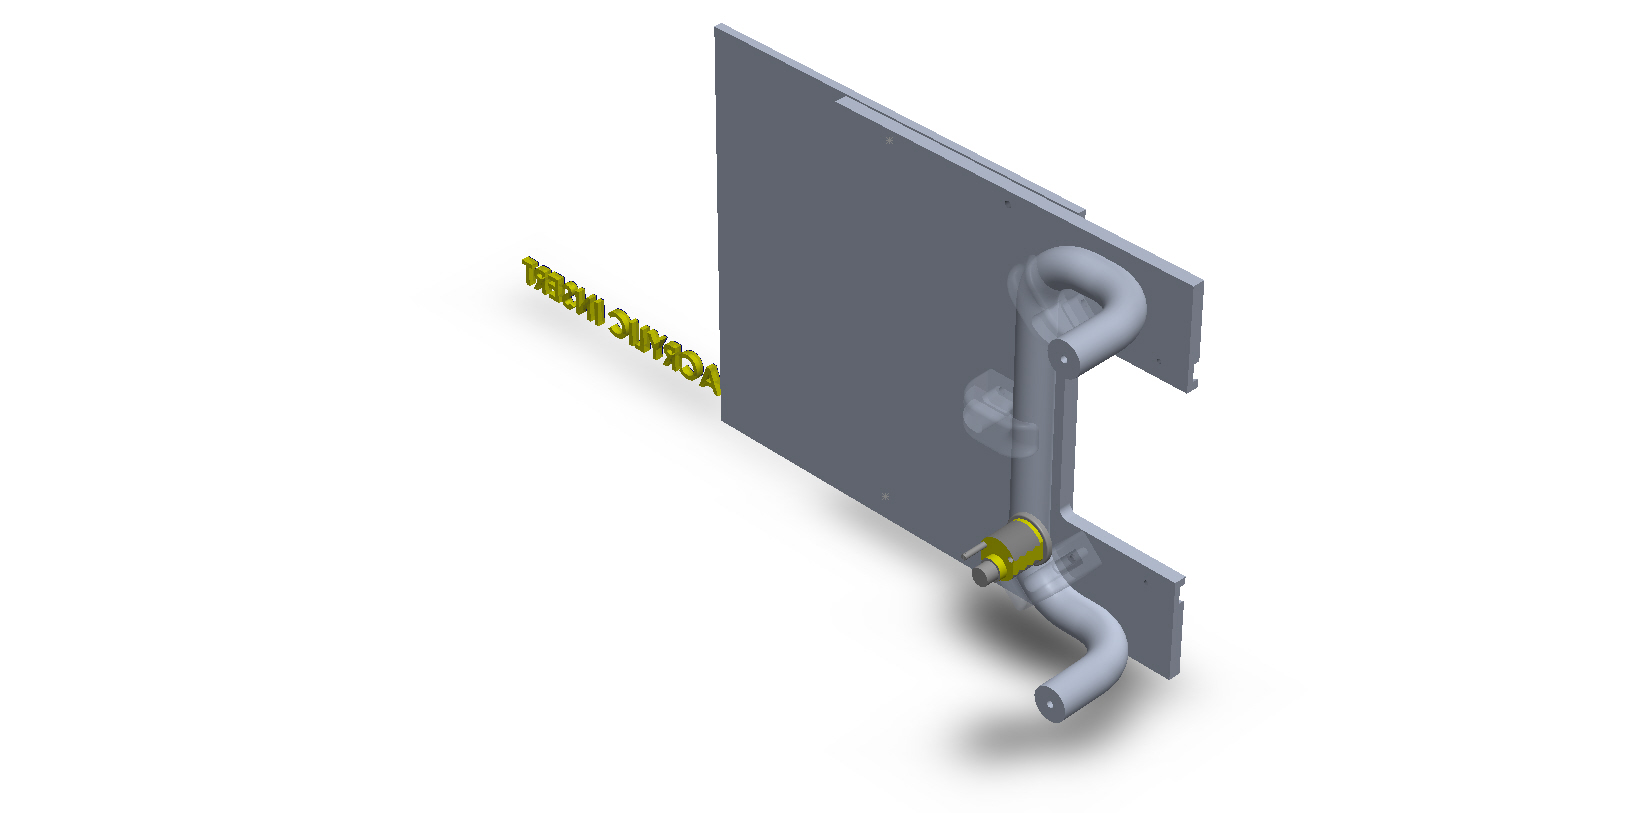 Square Aluminum Sliding Plate Door Handles for Small Businesses.